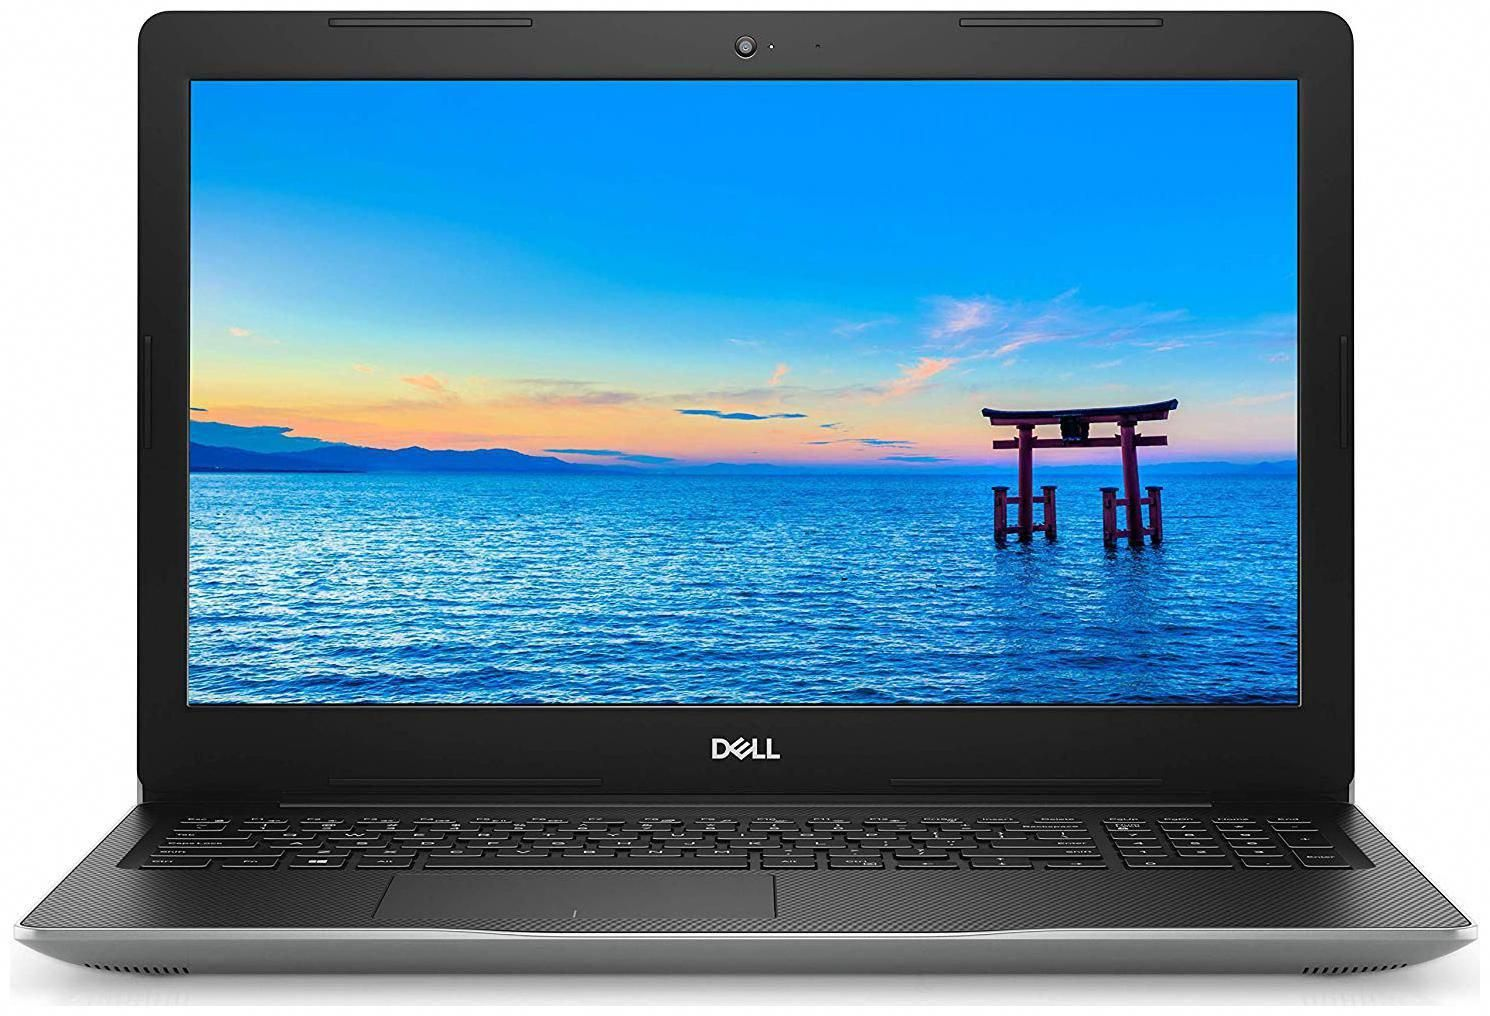 Dell Inspiron 15 3583 Intel Celeron Processor 4205u 7th Gen 15 6 Inch Intel Uhd 610 Graphics Laptop 4gb 1tb In 2020 Dell Inspiron 15 Dell Inspiron 3000 Dell Inspiron